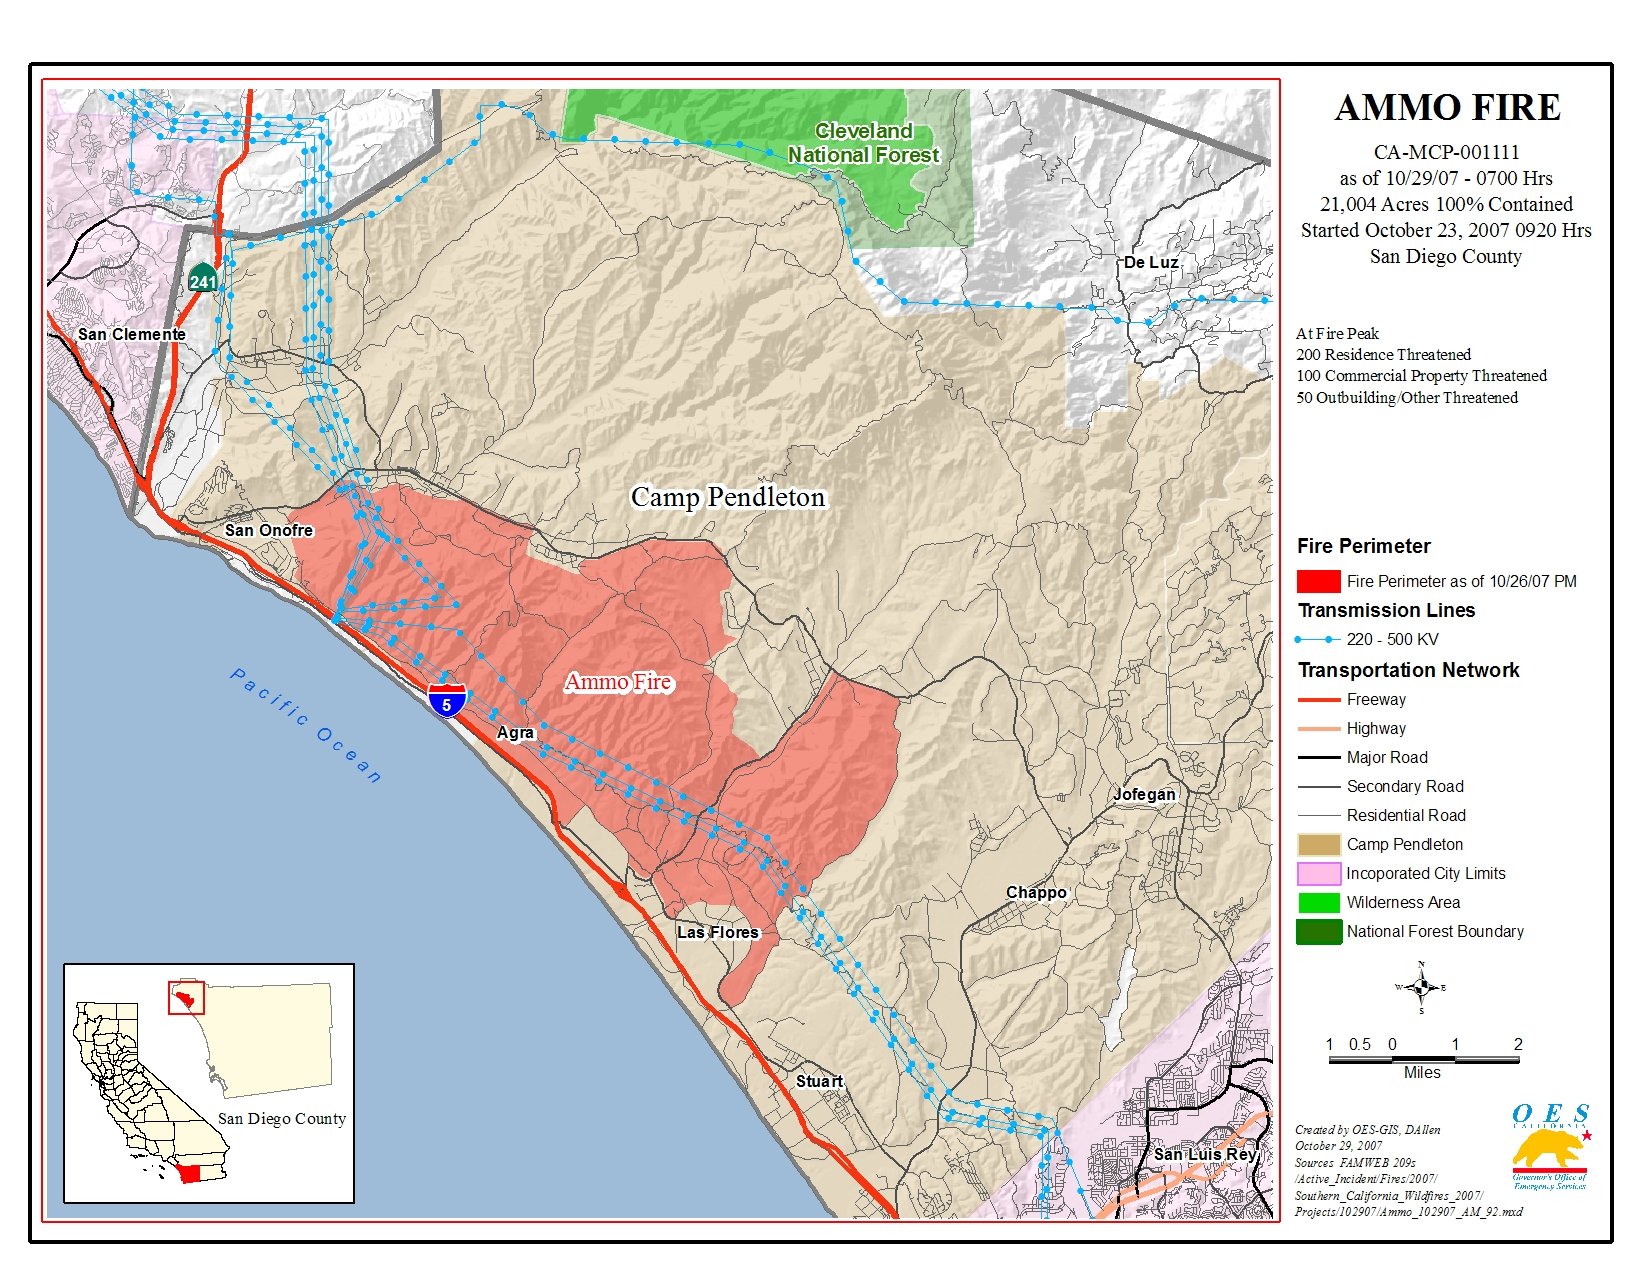 Ca Oes, Fire - Socal 2007 - Map Showing Current Fires In California